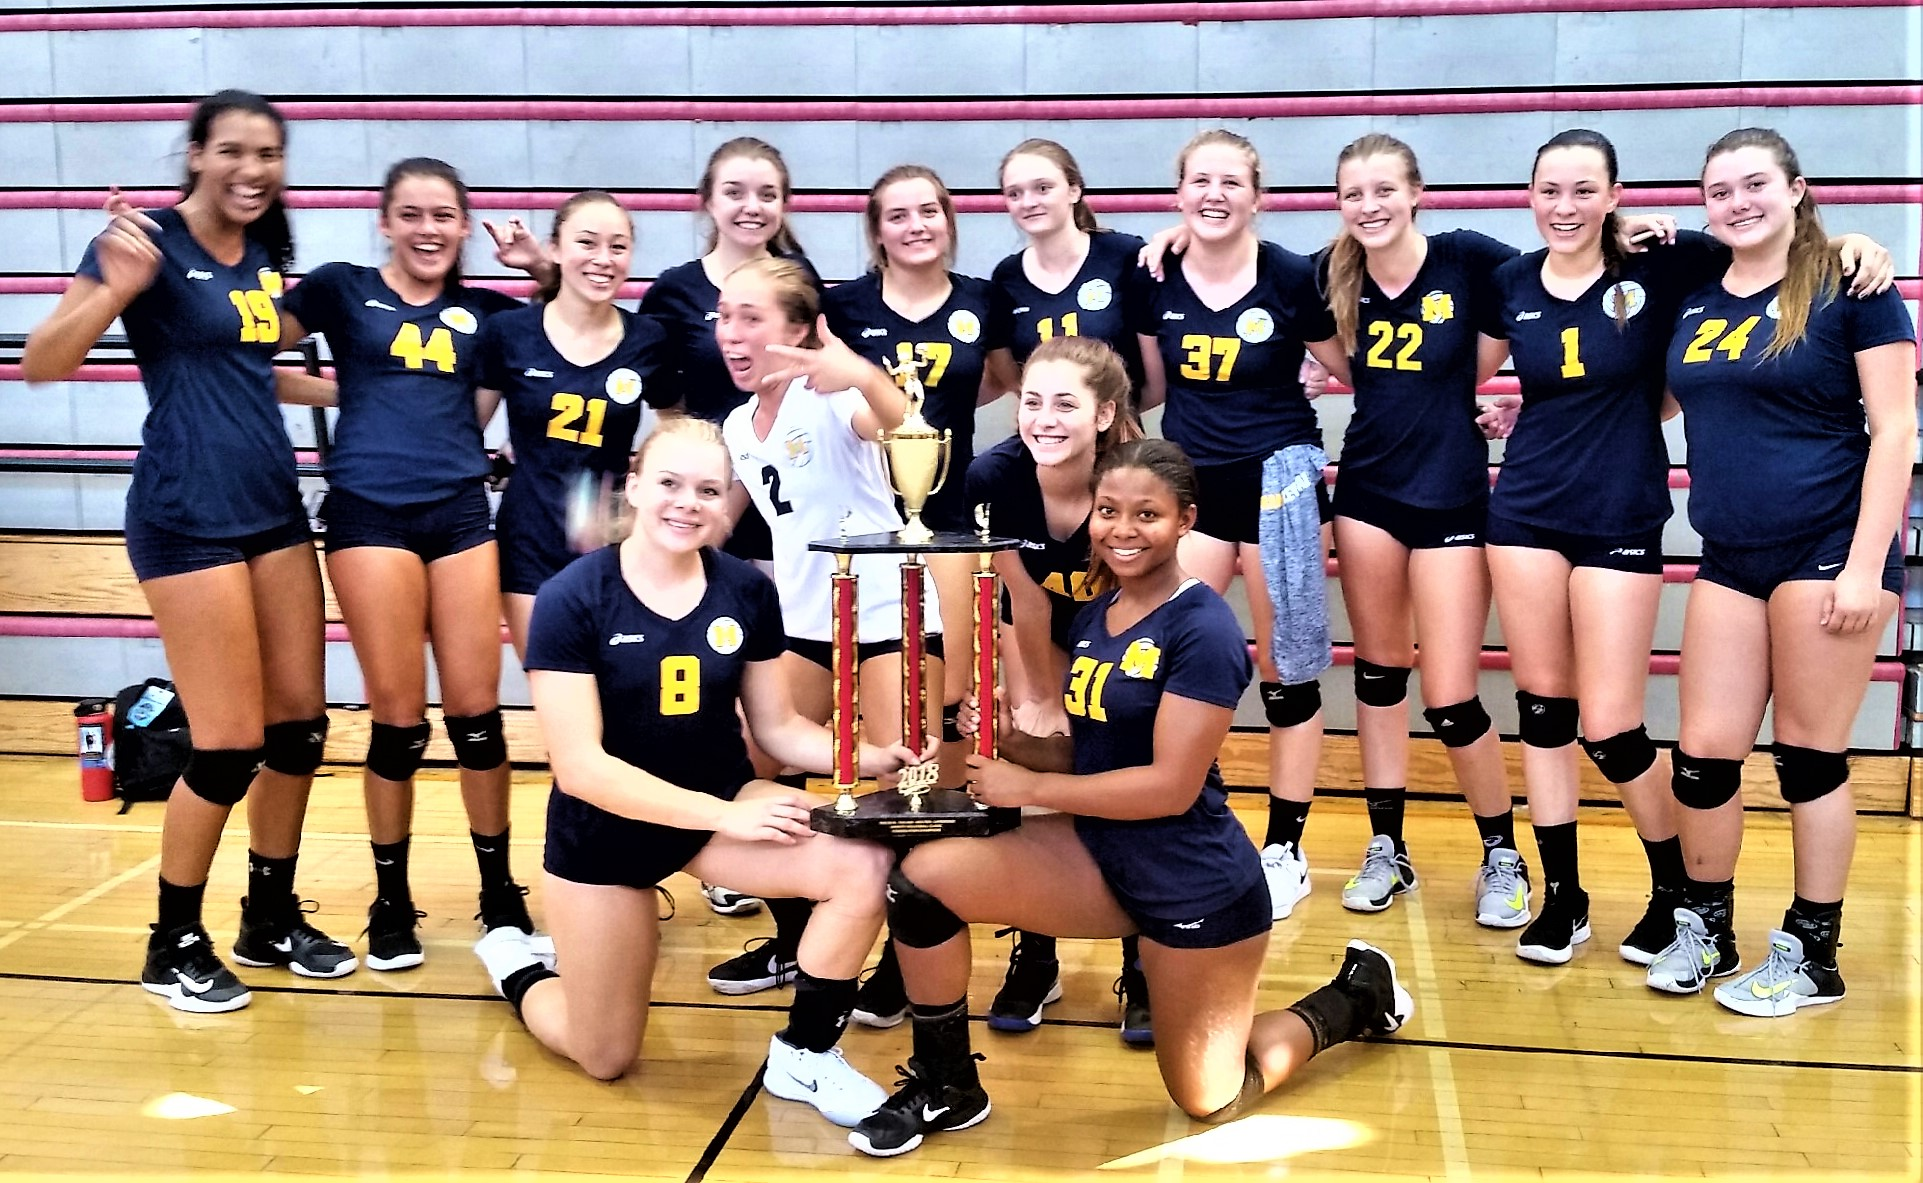 Millikan Girls Volleyball Show of Strength